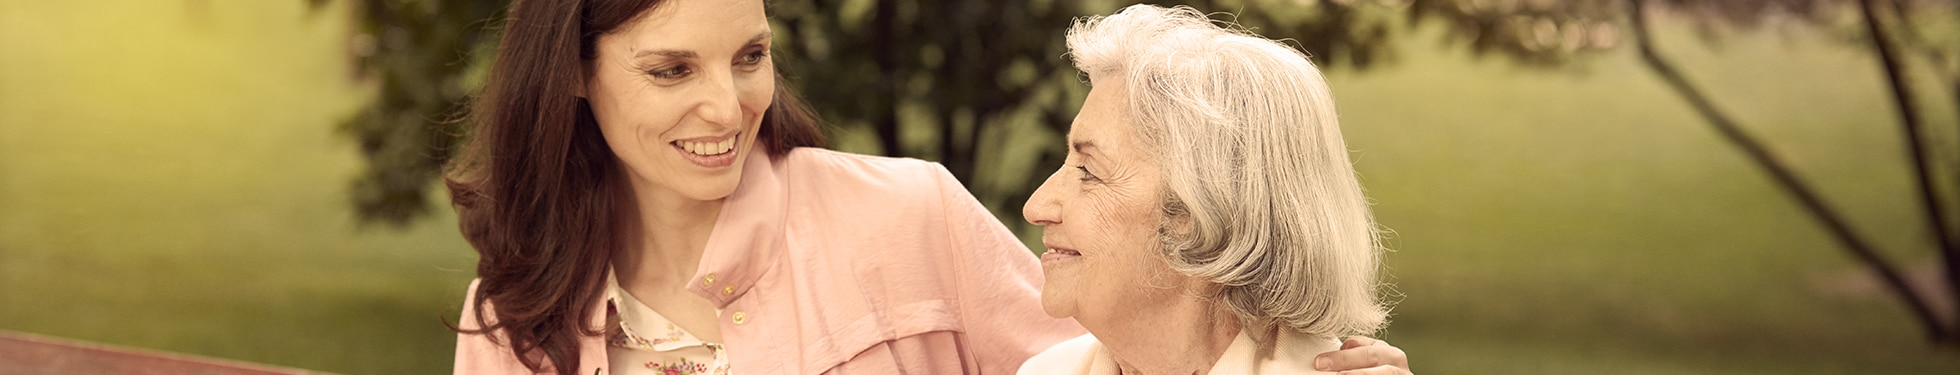 Older woman sitting with younger woman – useful tips for those new to caregiving